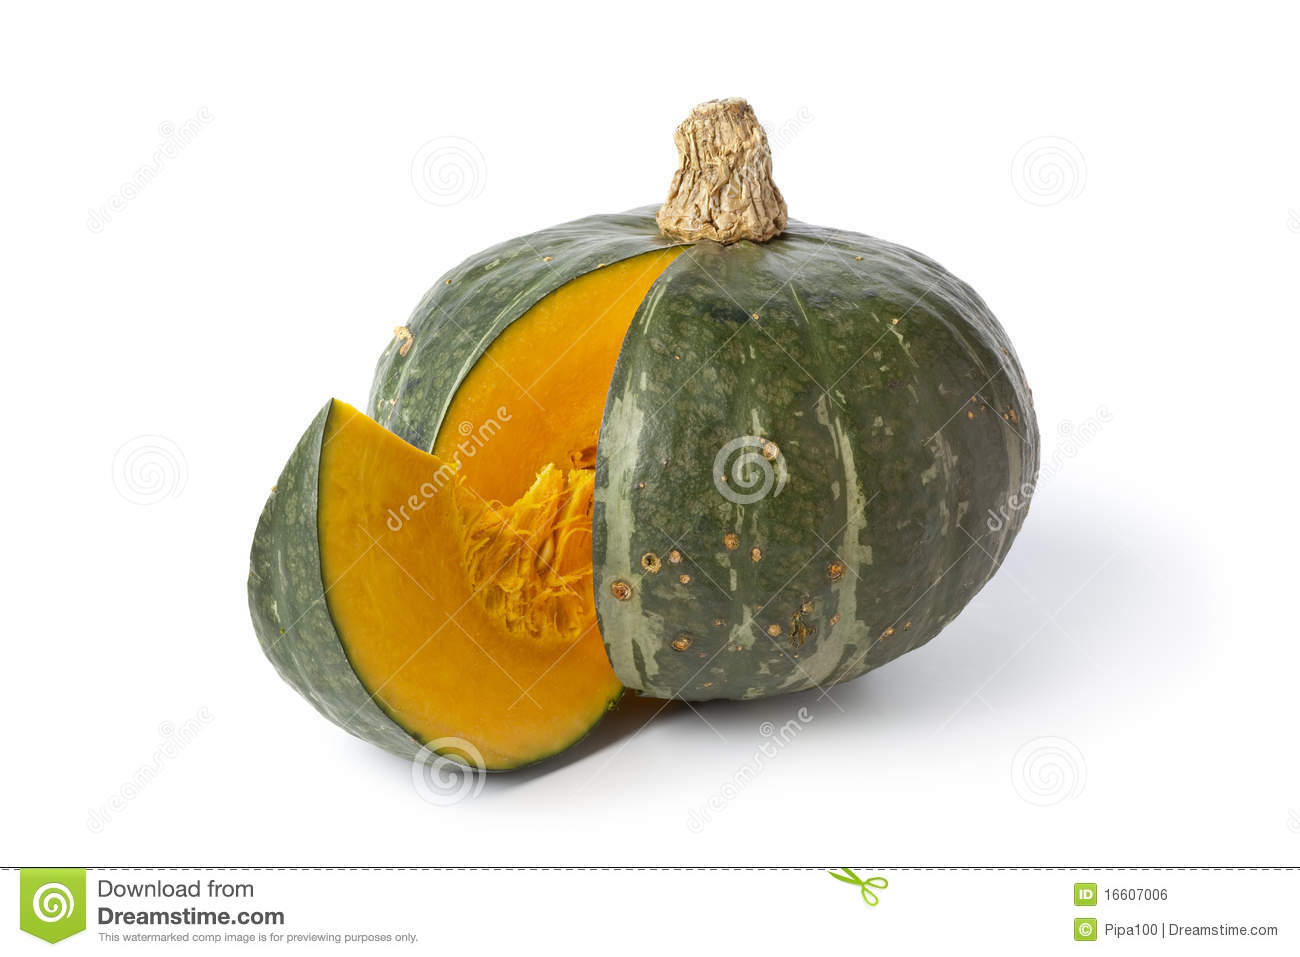 Green Pumpkin With A Slice Royalty Free Stock Image - Image: 16607006